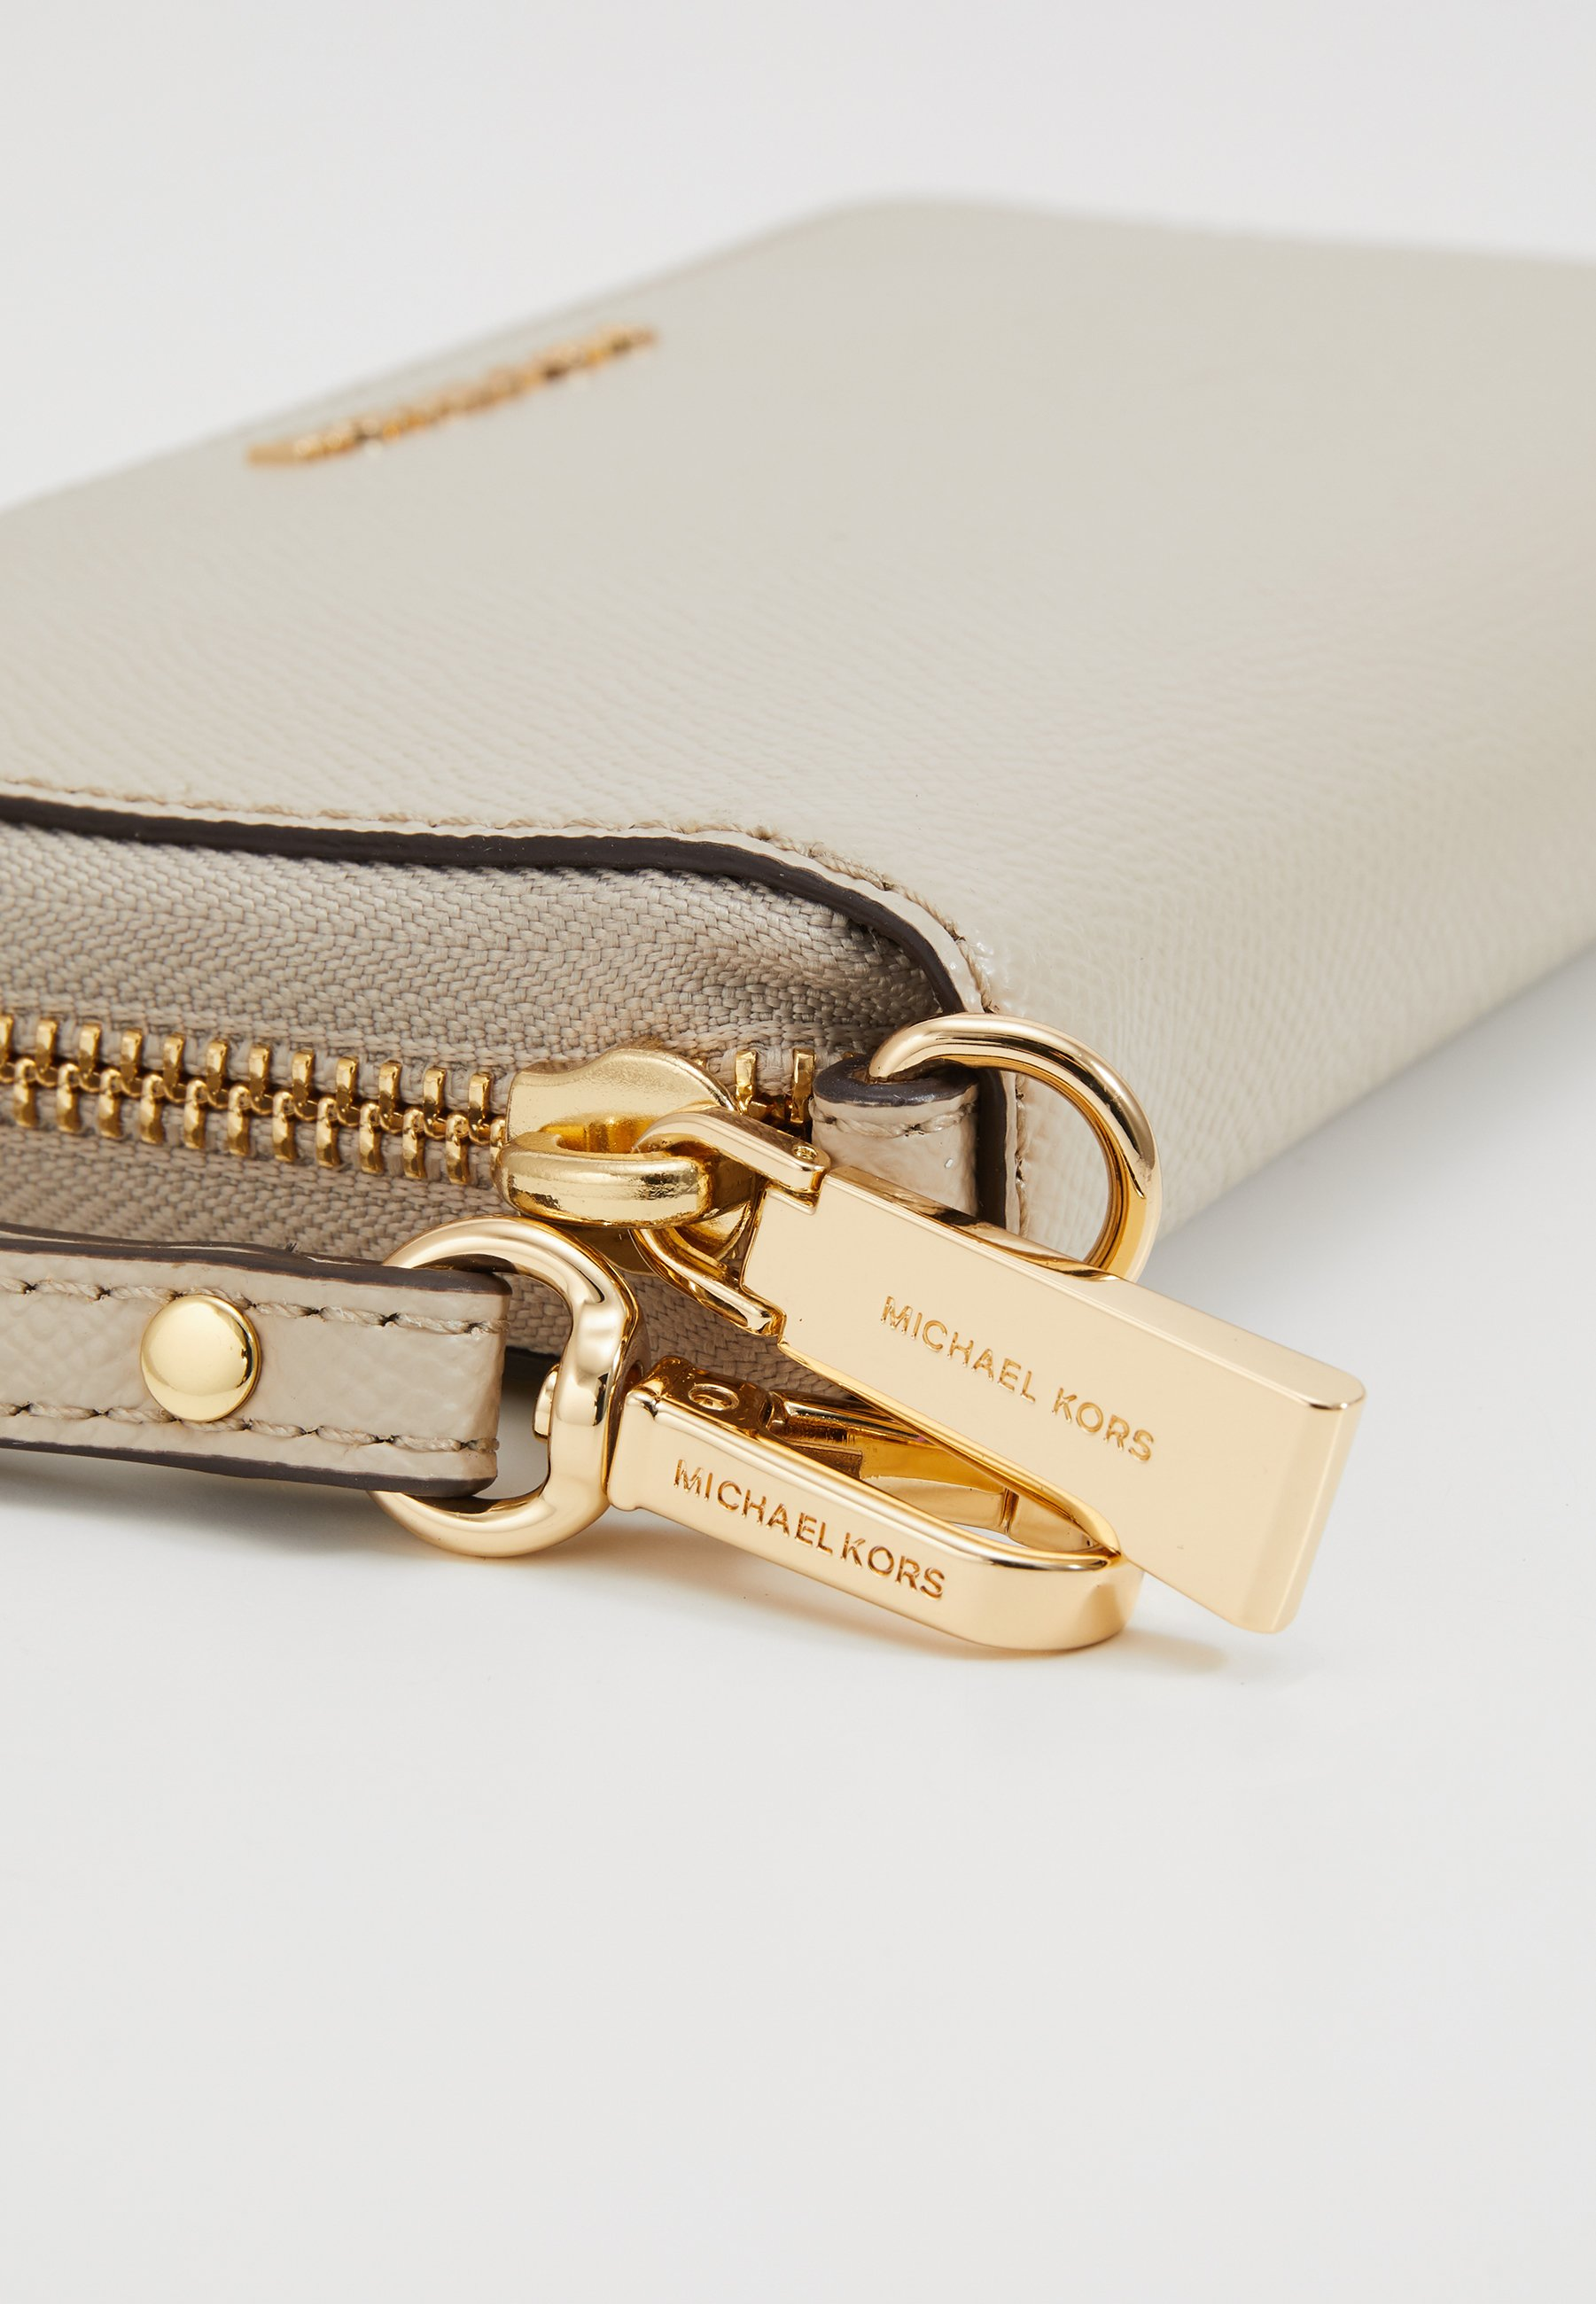 Wholesale 2020 Accessories MICHAEL Michael Kors JET SET FLAT CASE CROSSGRAIN  Wallet light sand zy7BJlYaz g6g5jBvLK